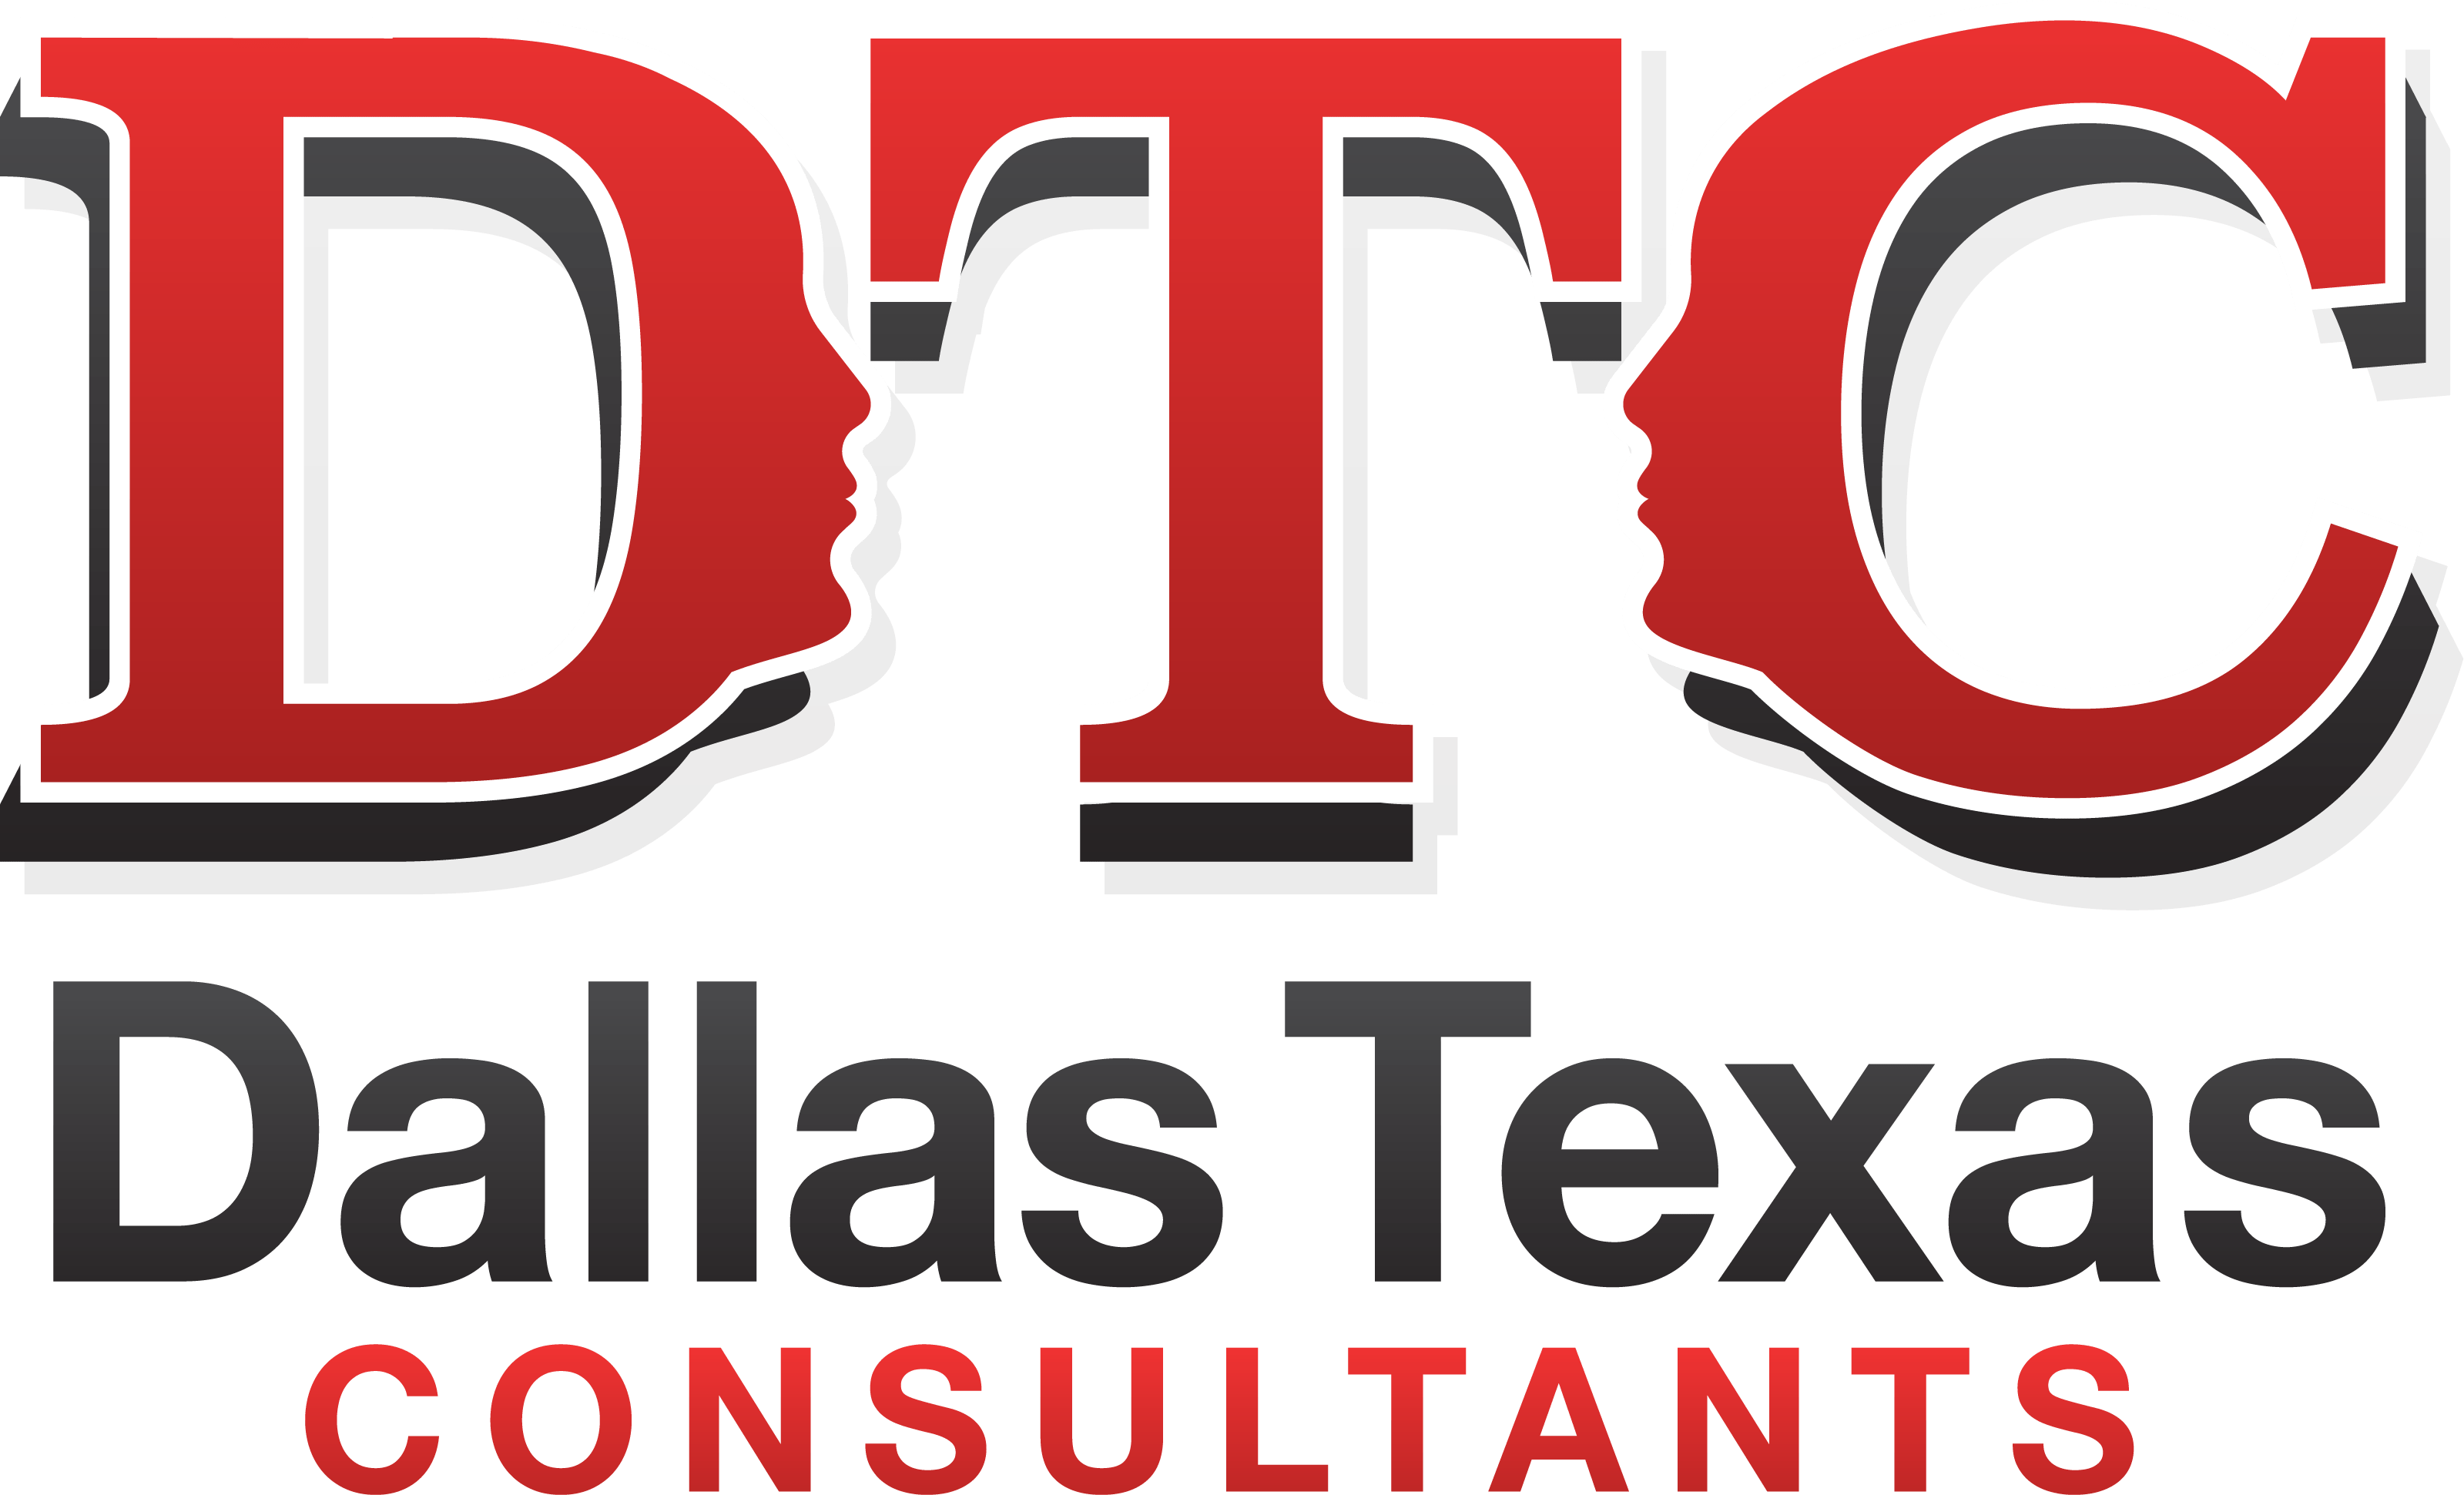 Dallas Texas Consultants, Inc.